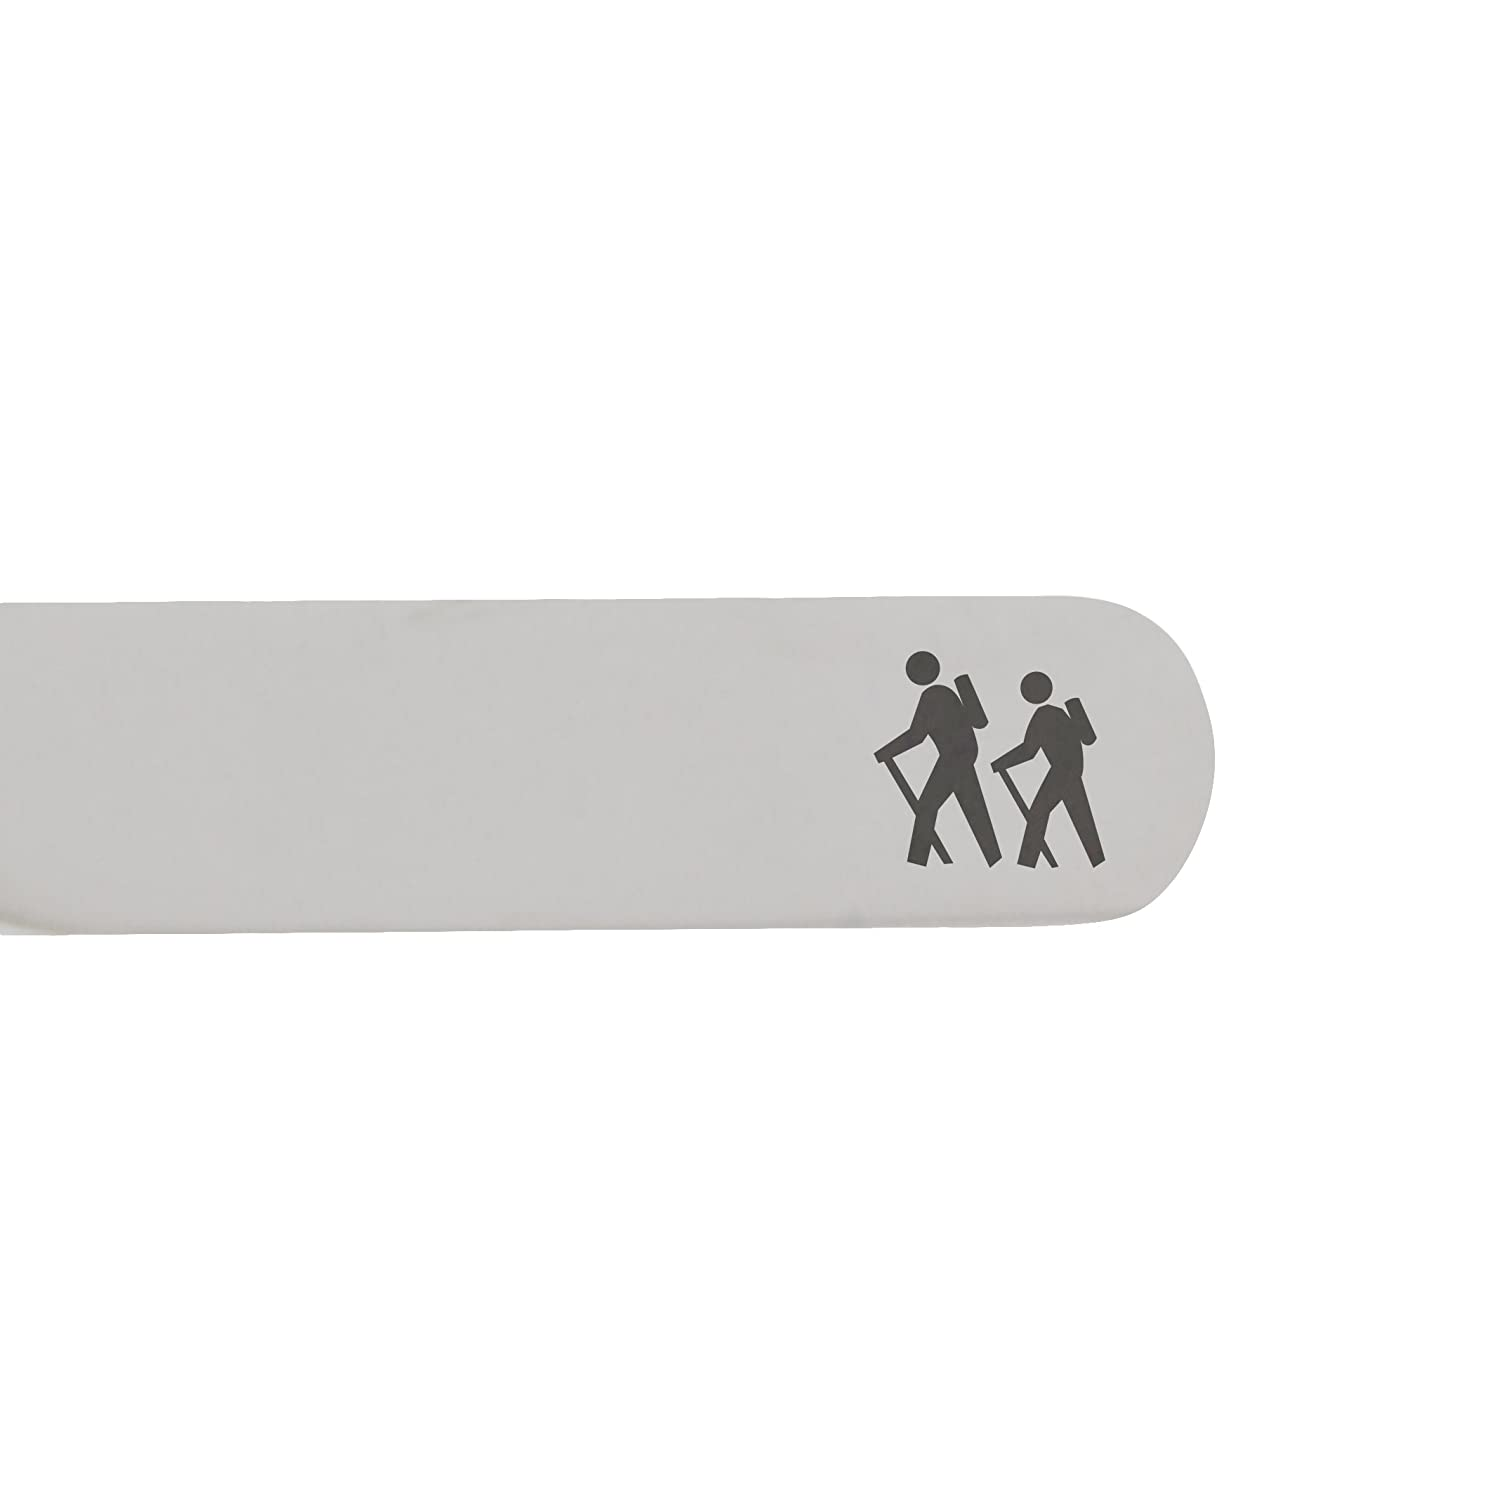 2.5 Inch Metal Collar Stiffeners Made In USA MODERN GOODS SHOP Stainless Steel Collar Stays With Laser Engraved Hiking Design